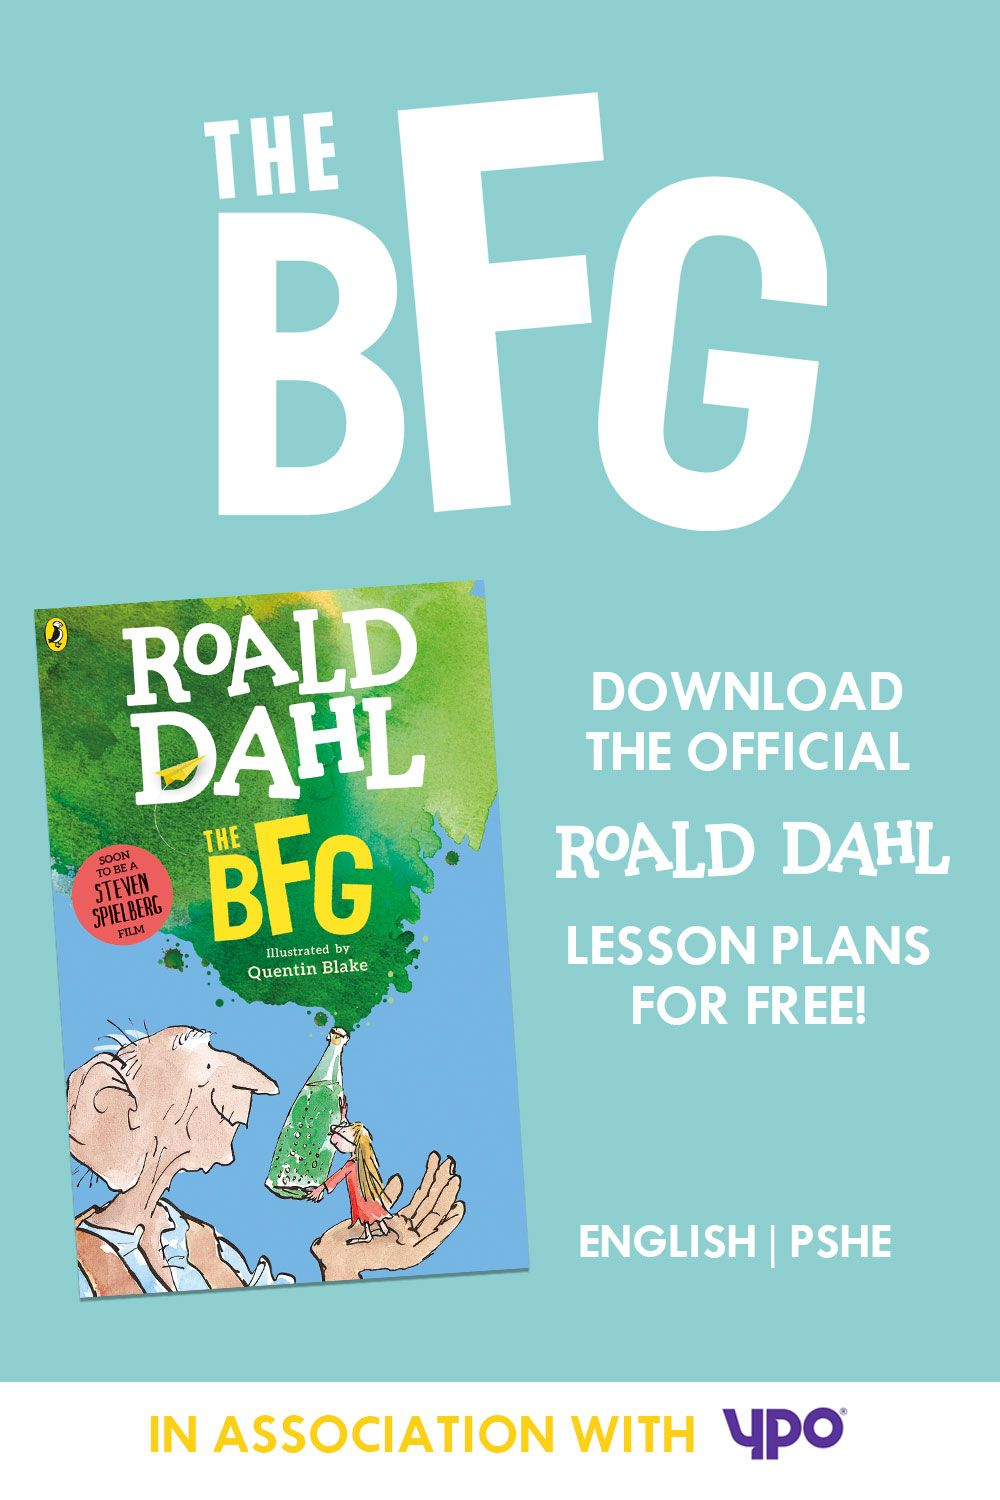 Ebook bfg roald dahl